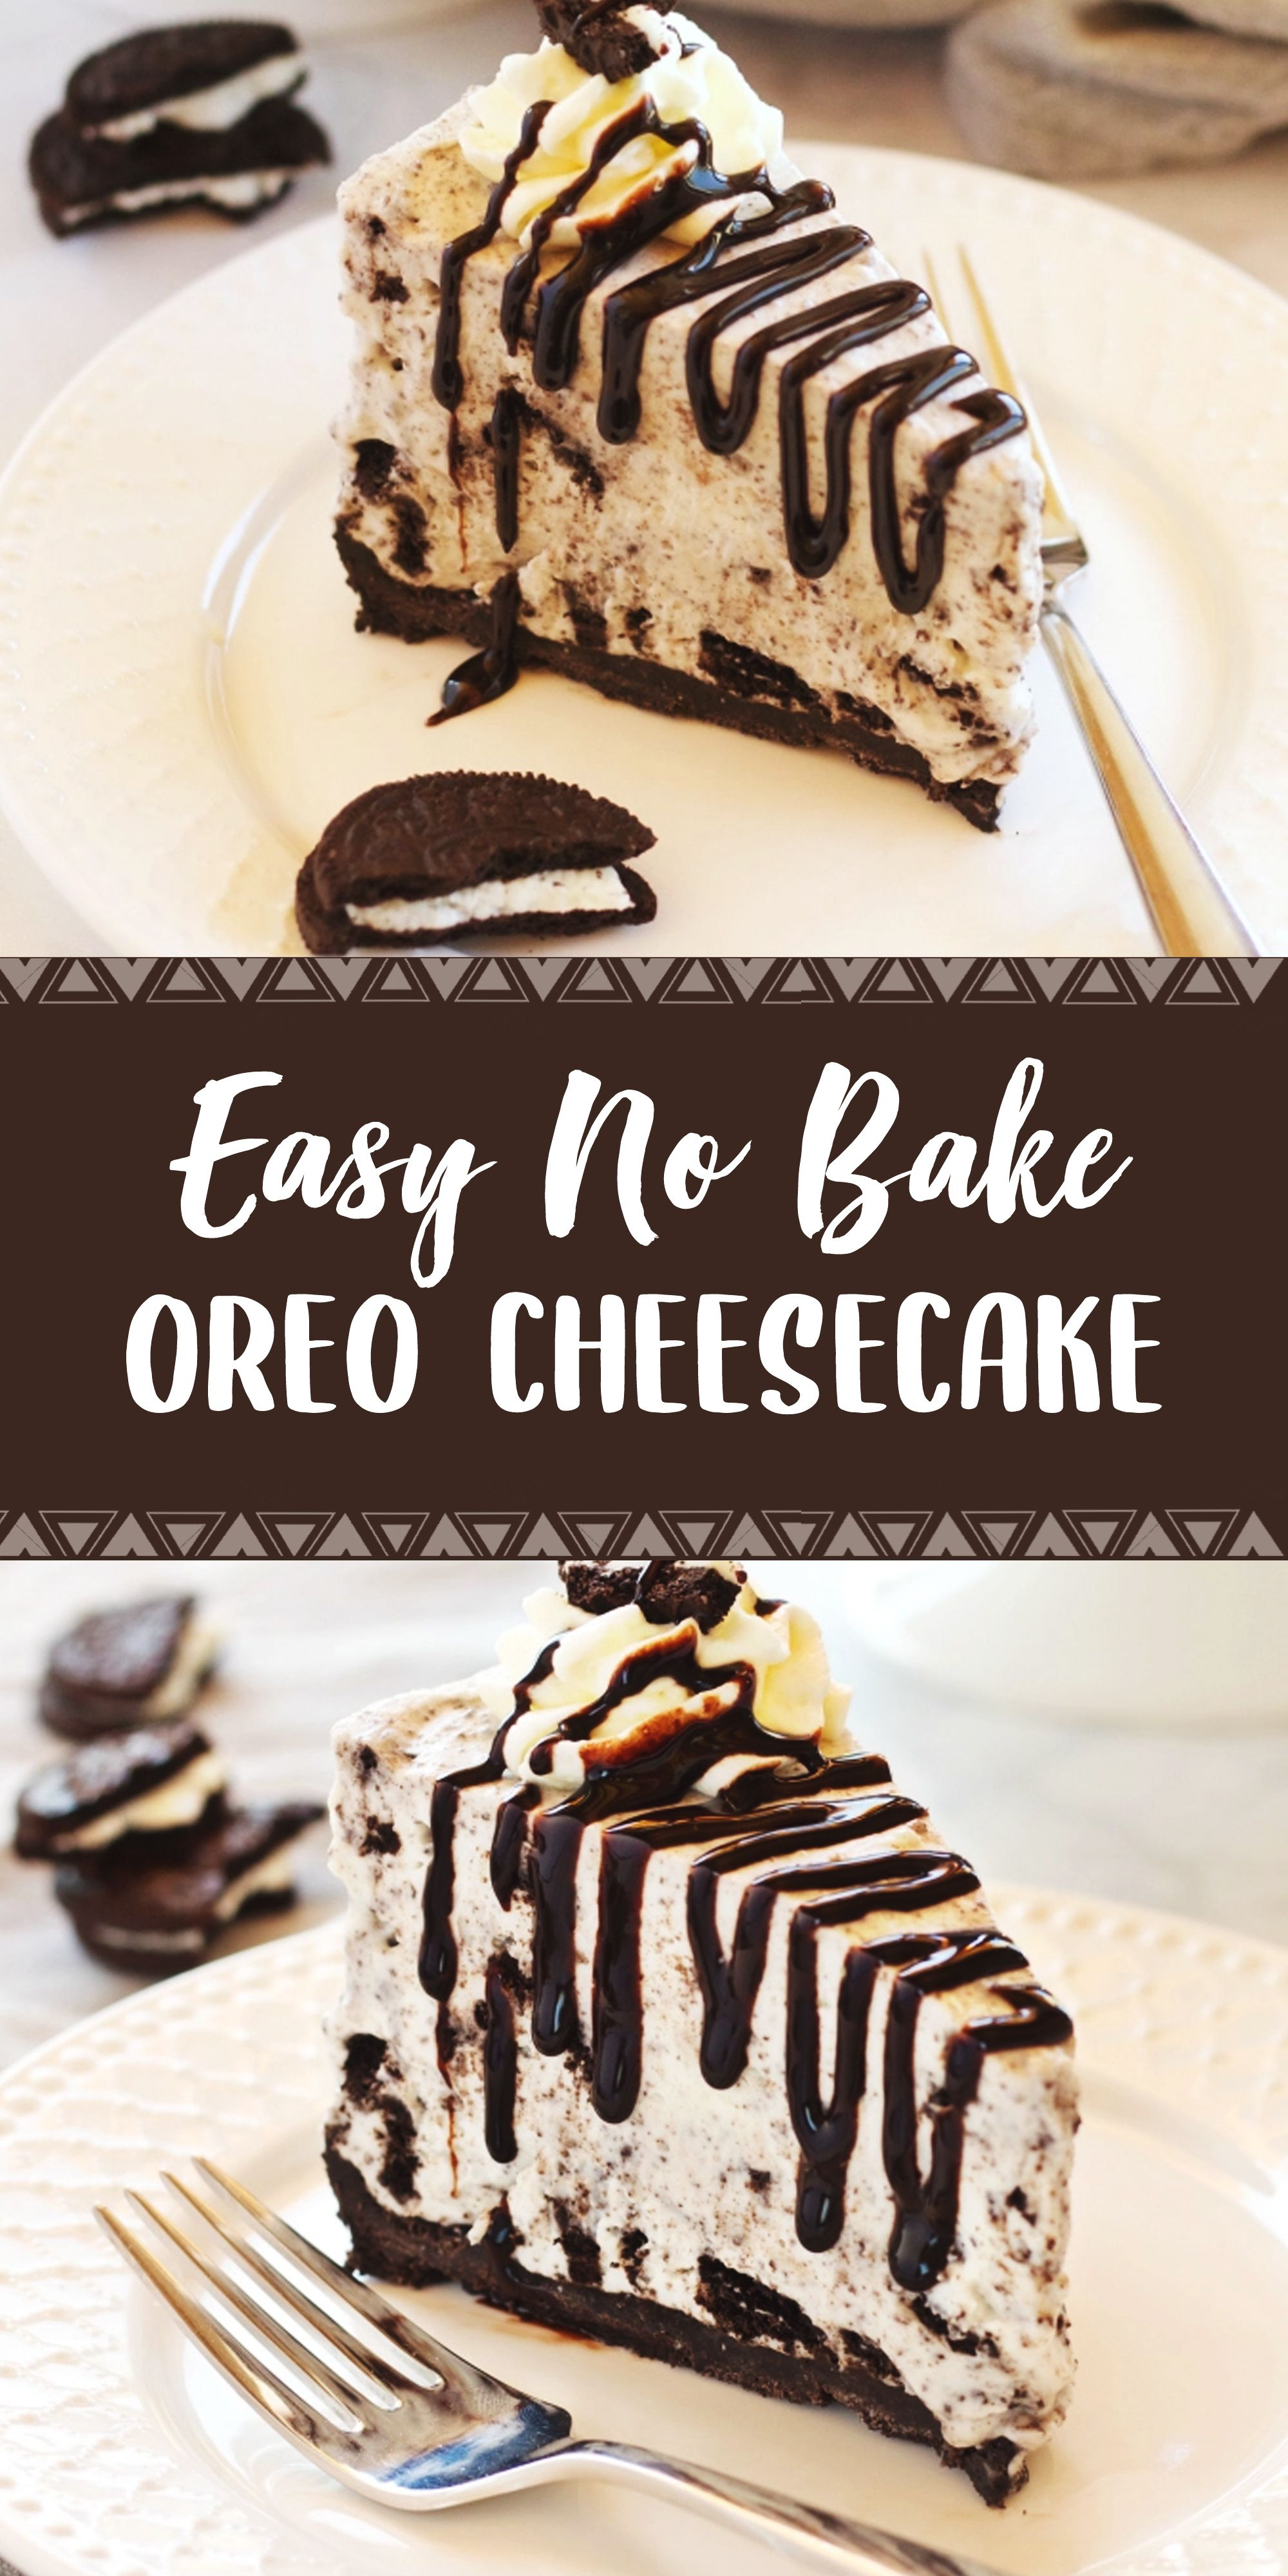 Easy No Bake Oreo Cheesecake Baking Desserts Cheesecake Recipes